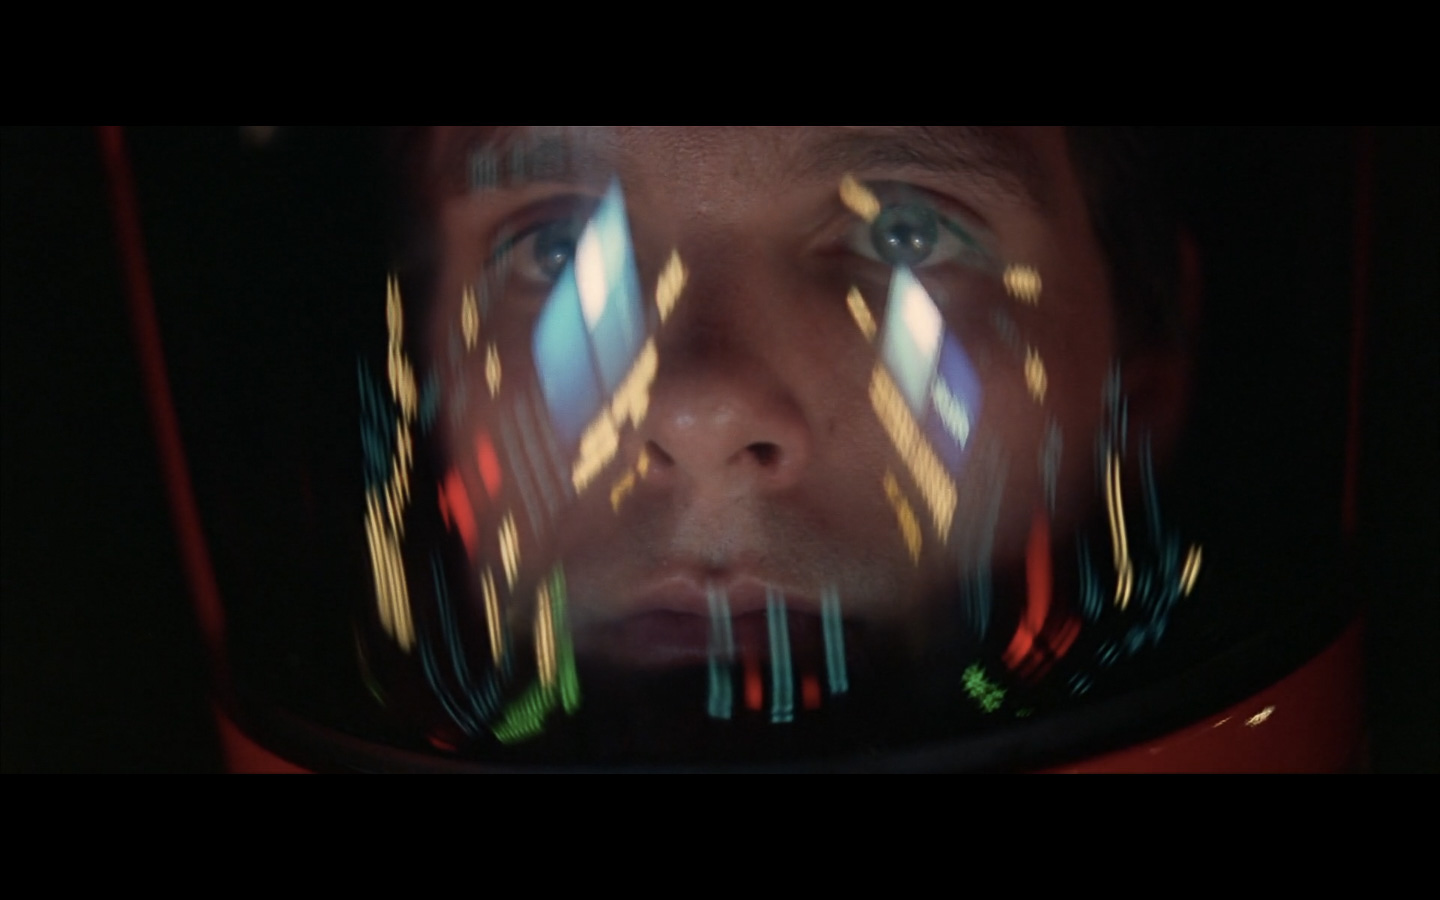 reflection space odyssey helmet-2